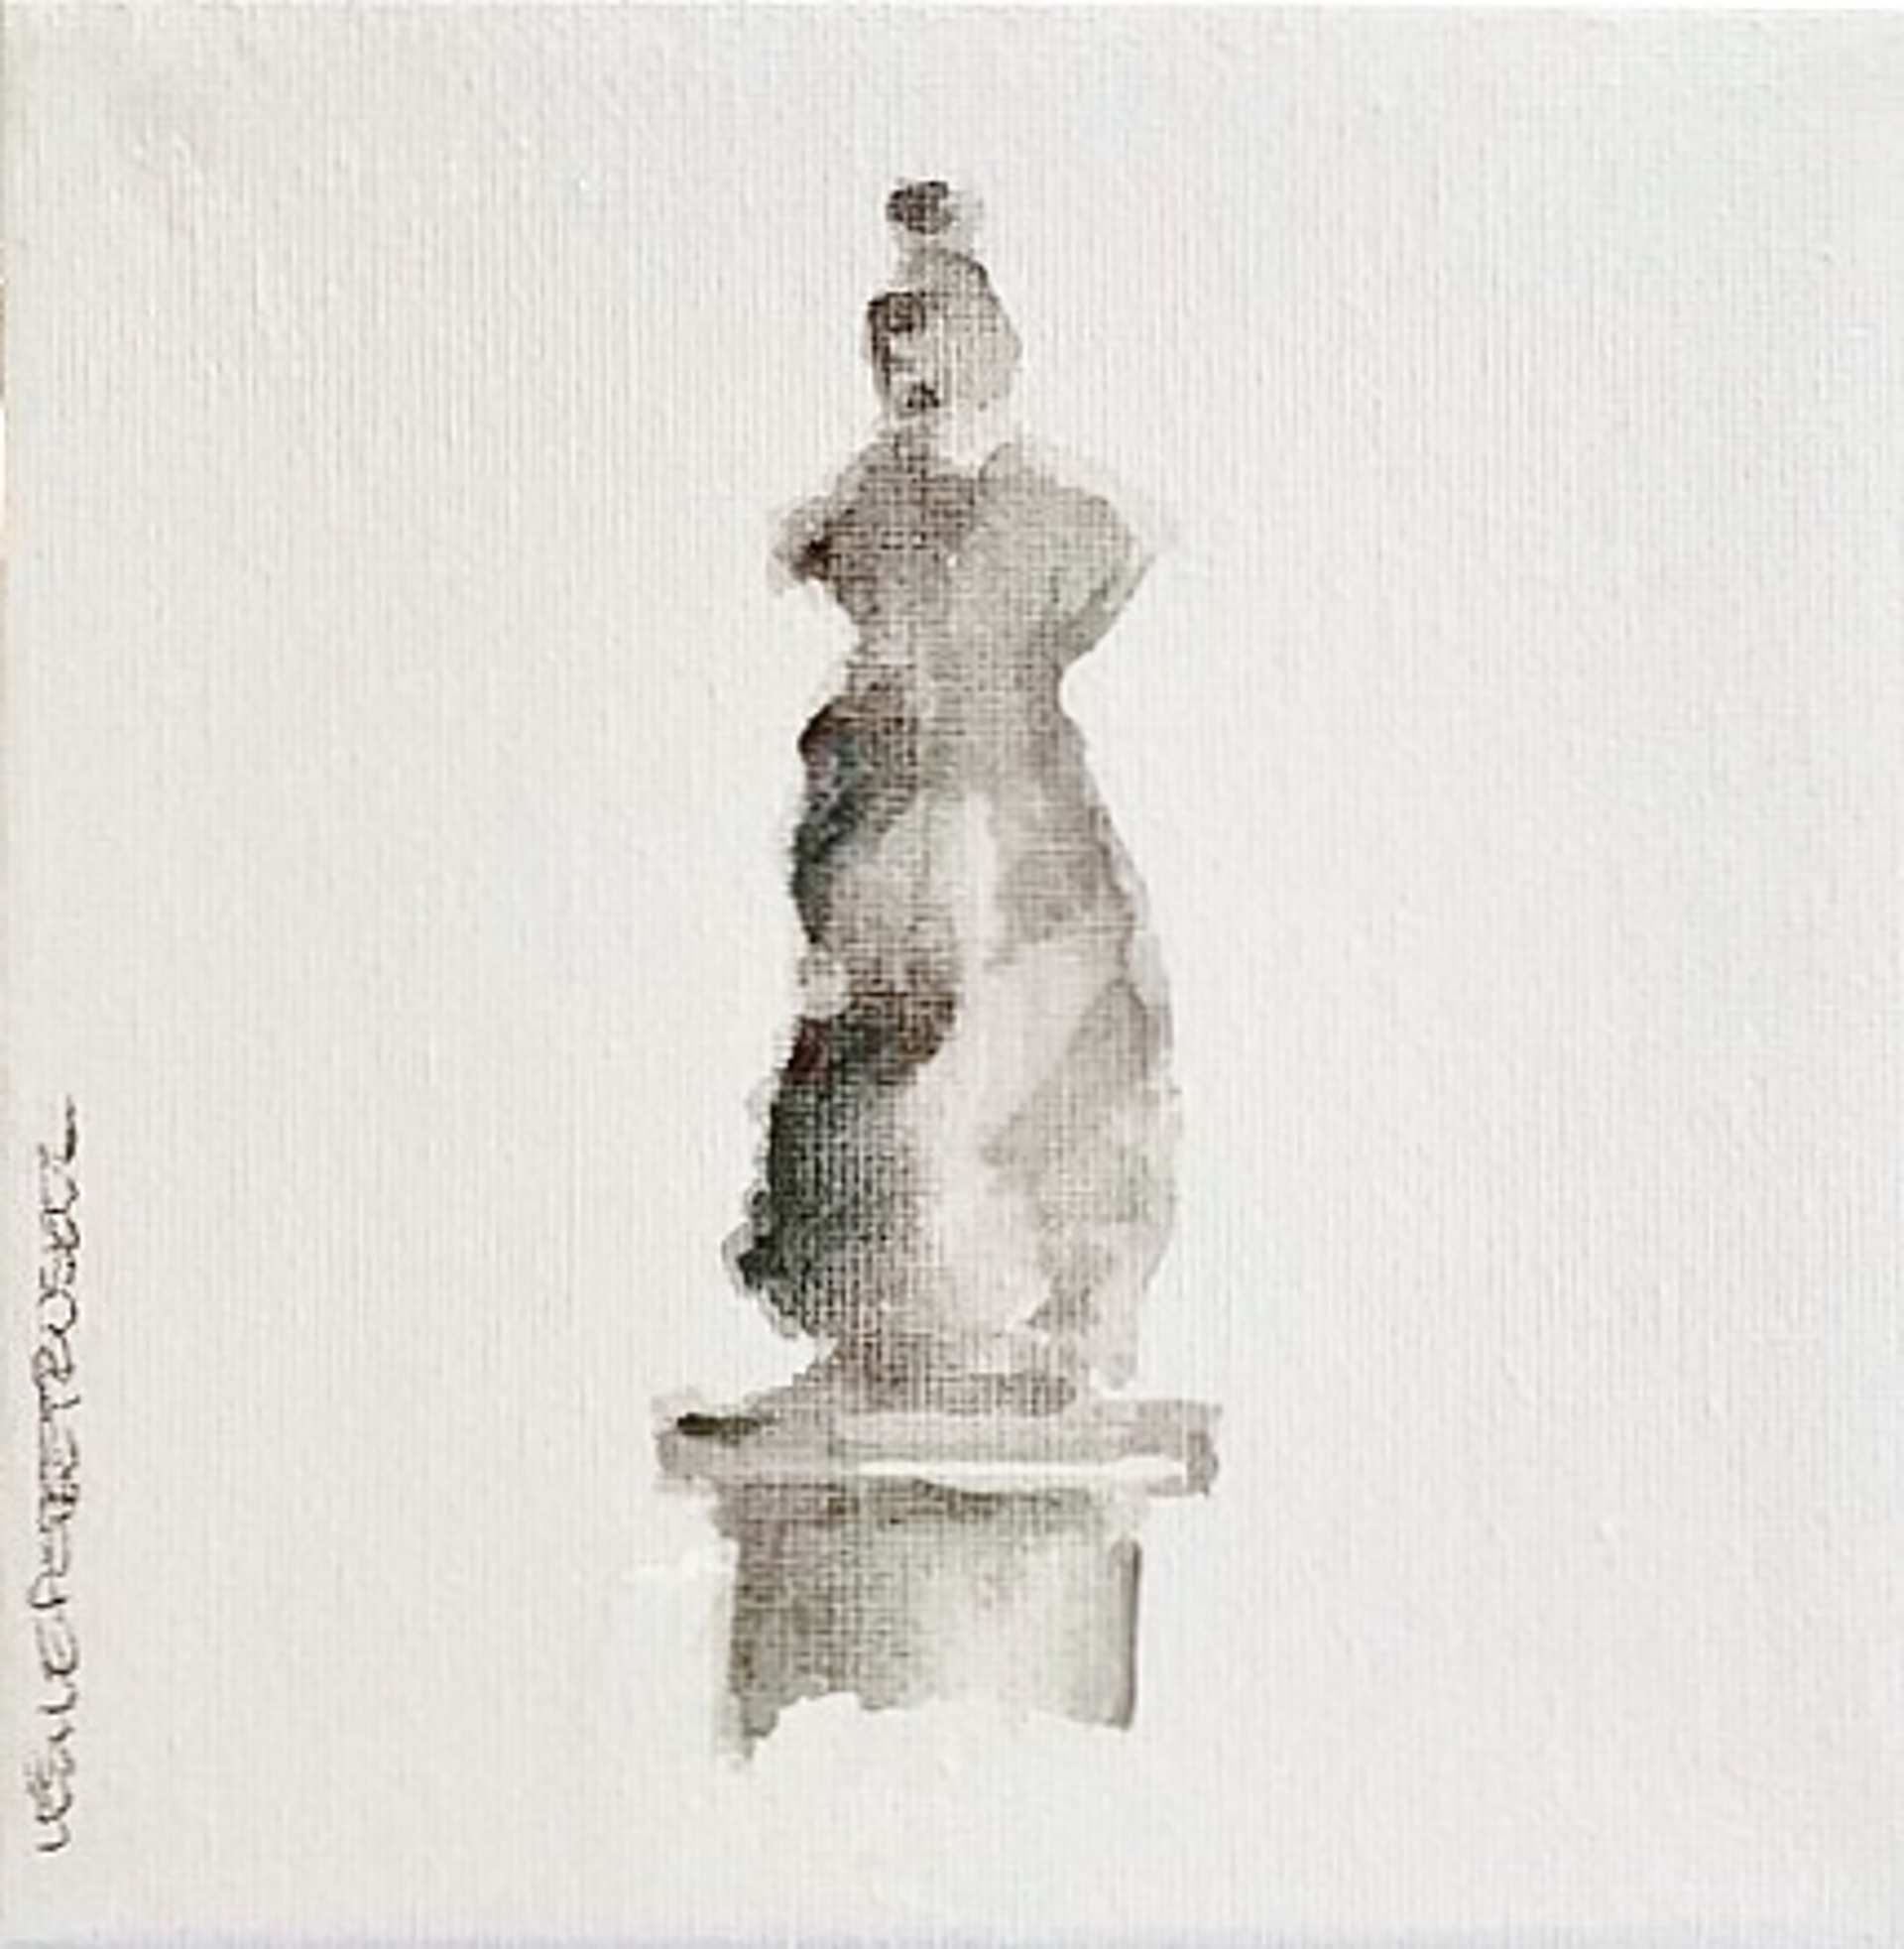 Statuesque III by Leslie Poteet Busker